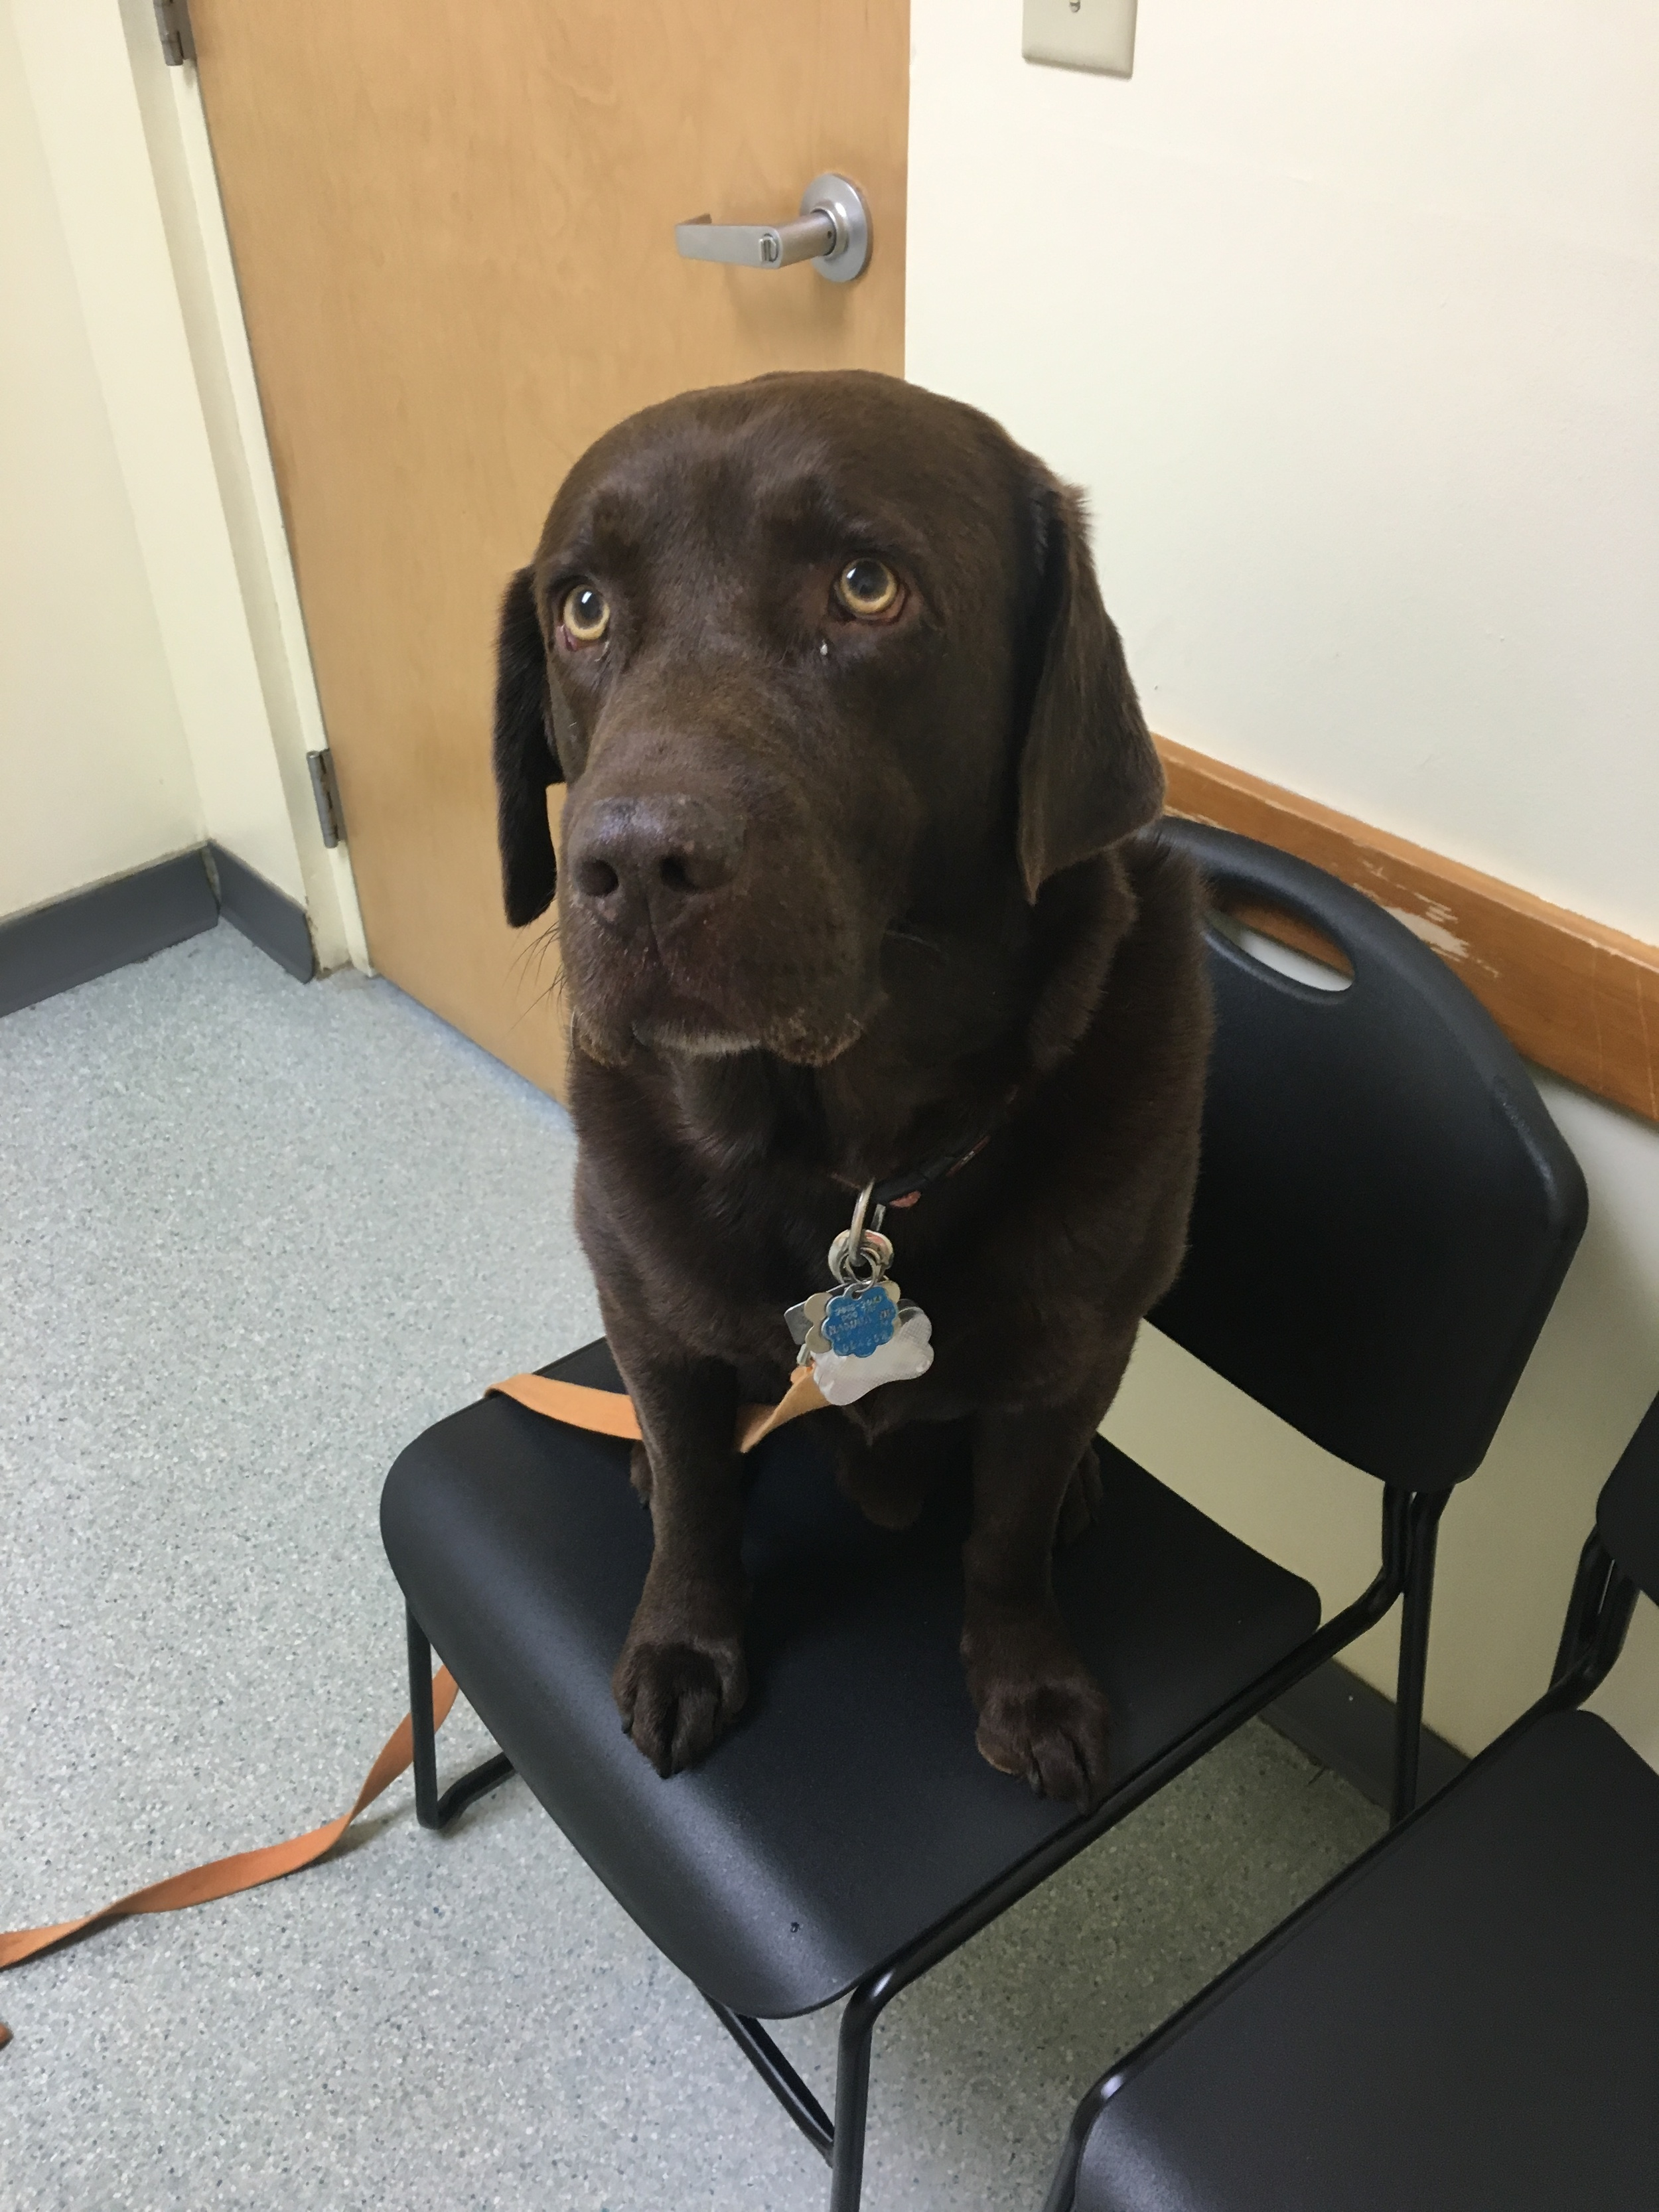 Another vet visit for Coop. Wasn't feeling it this time around.